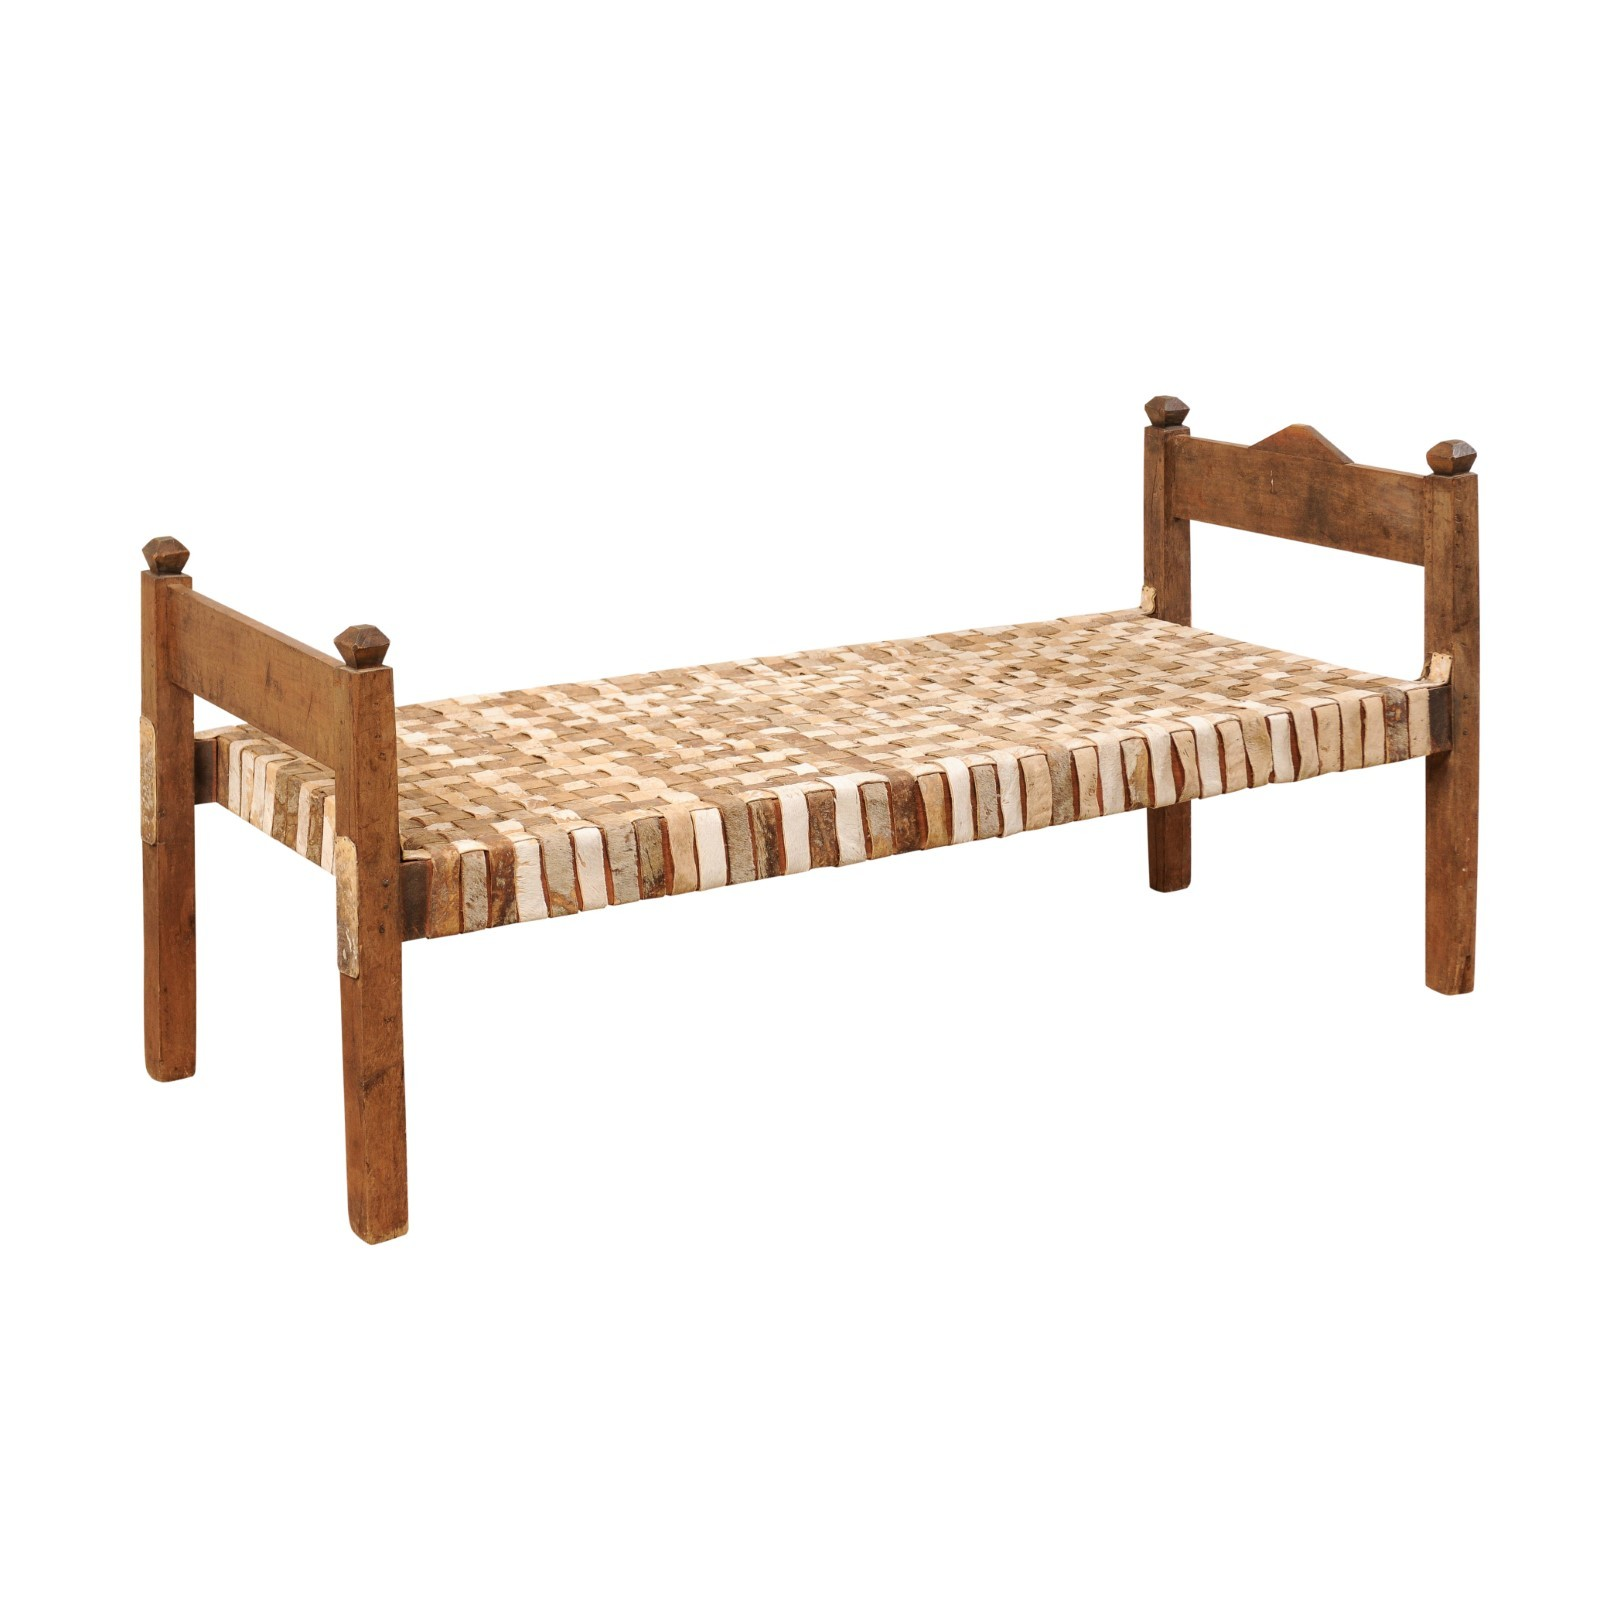 Woven Leather & Wood Frame Daybed Bench